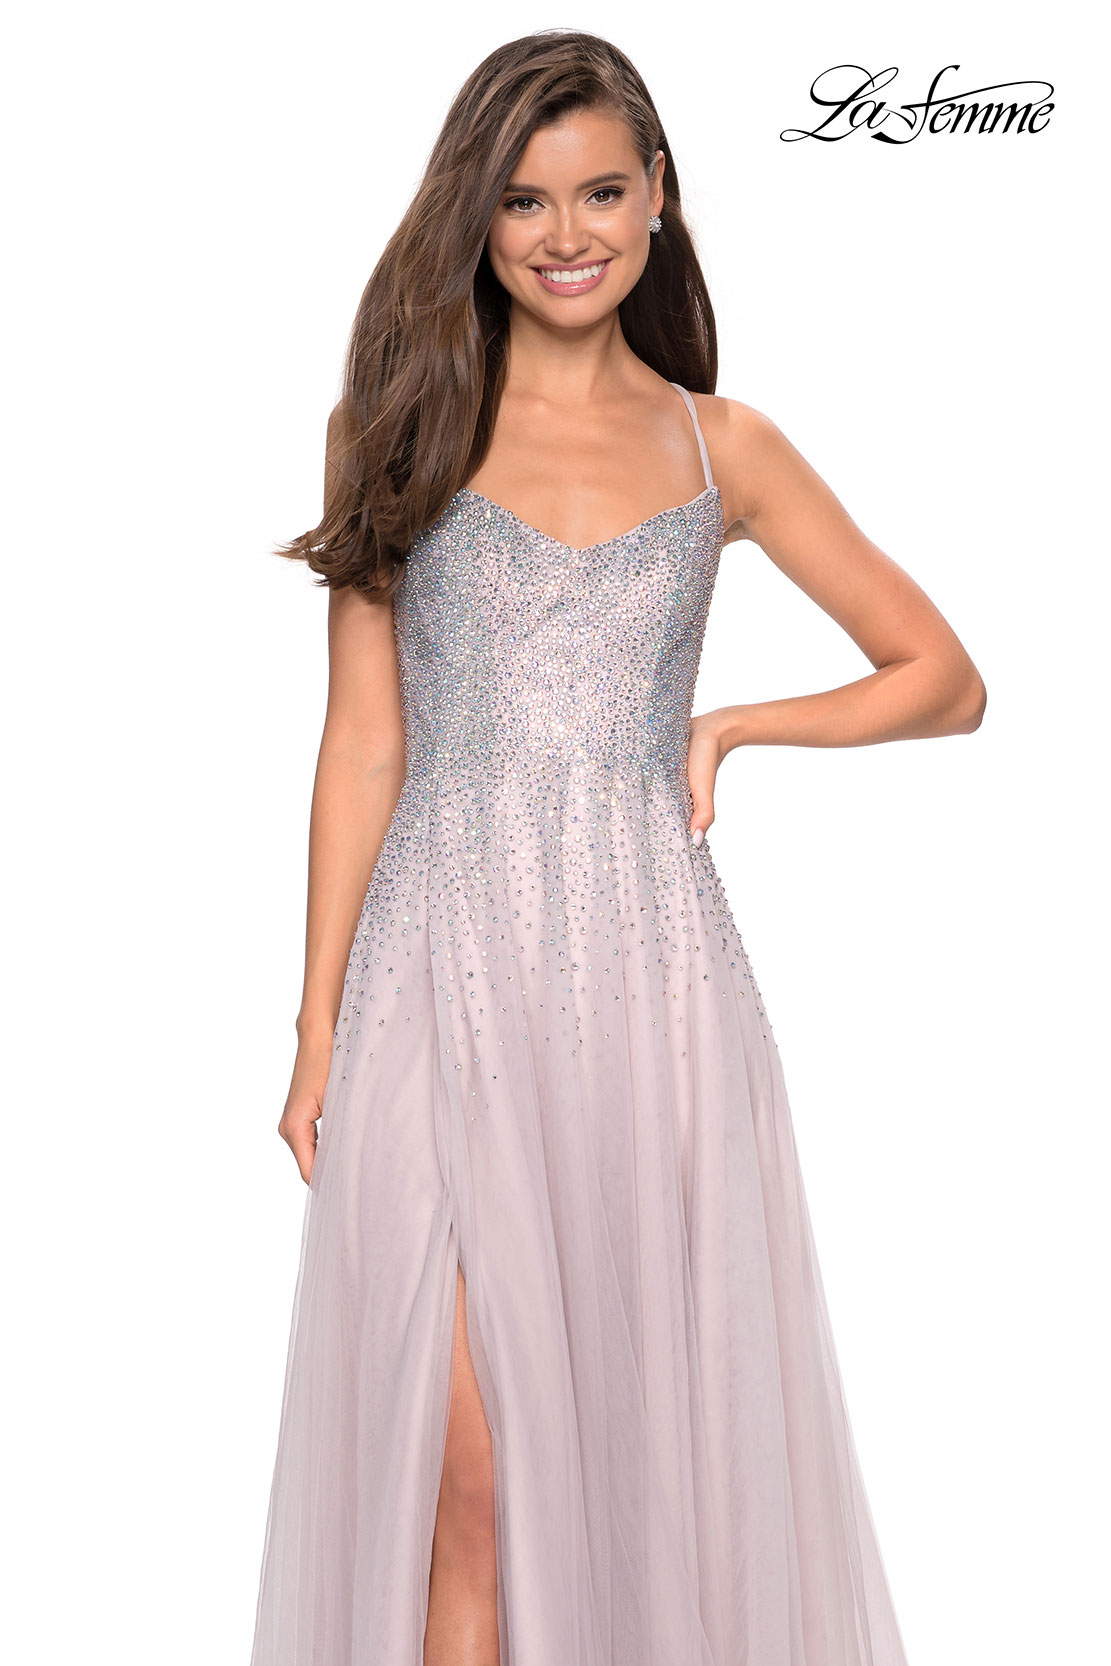 Mauve prom dress with rhinestone bodice